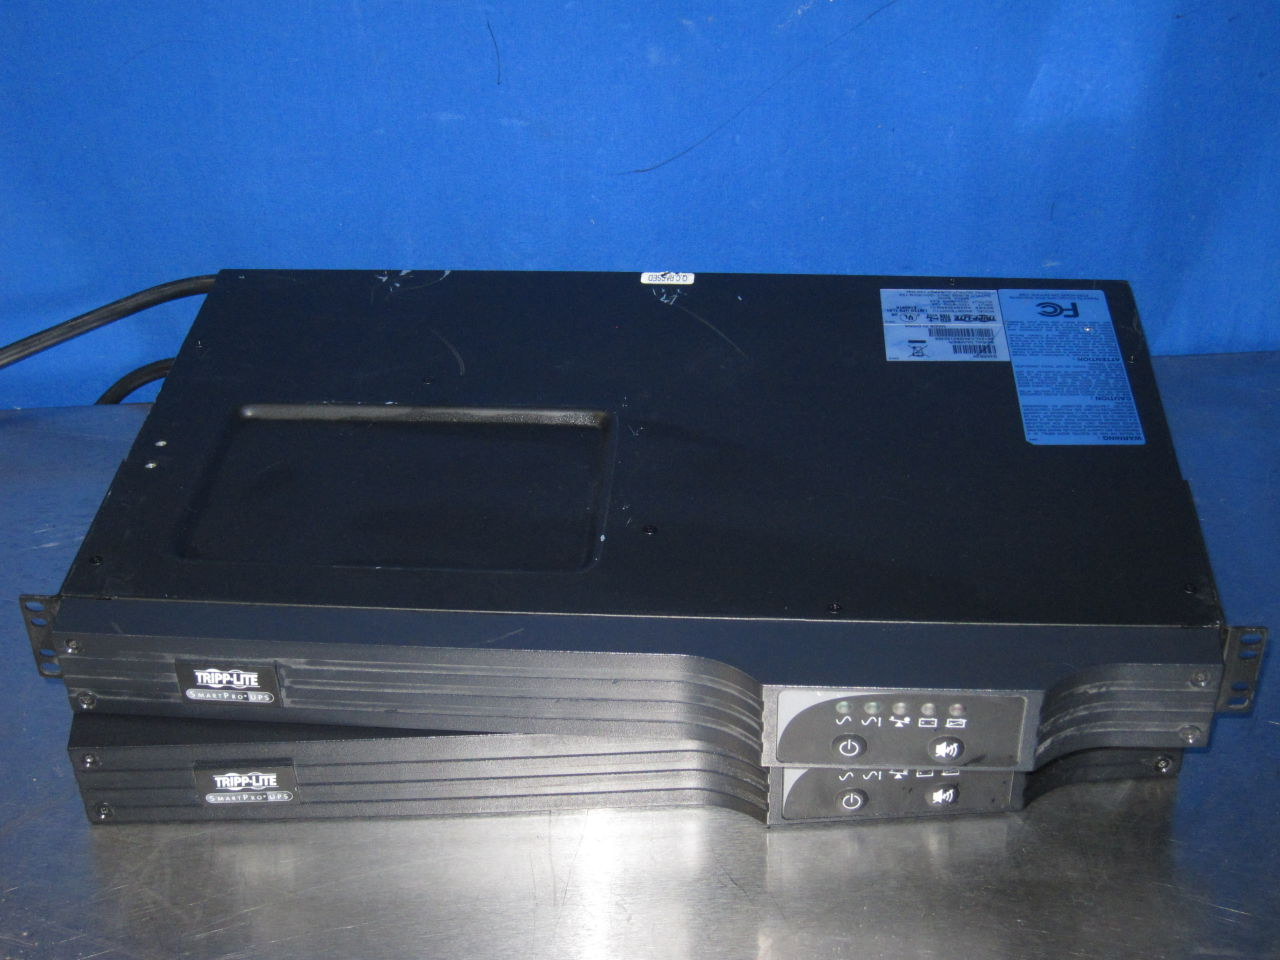 TRIPP-LITE Smart500RT1U  - Lot of 2 Uninterruptible Power Supply / UPS